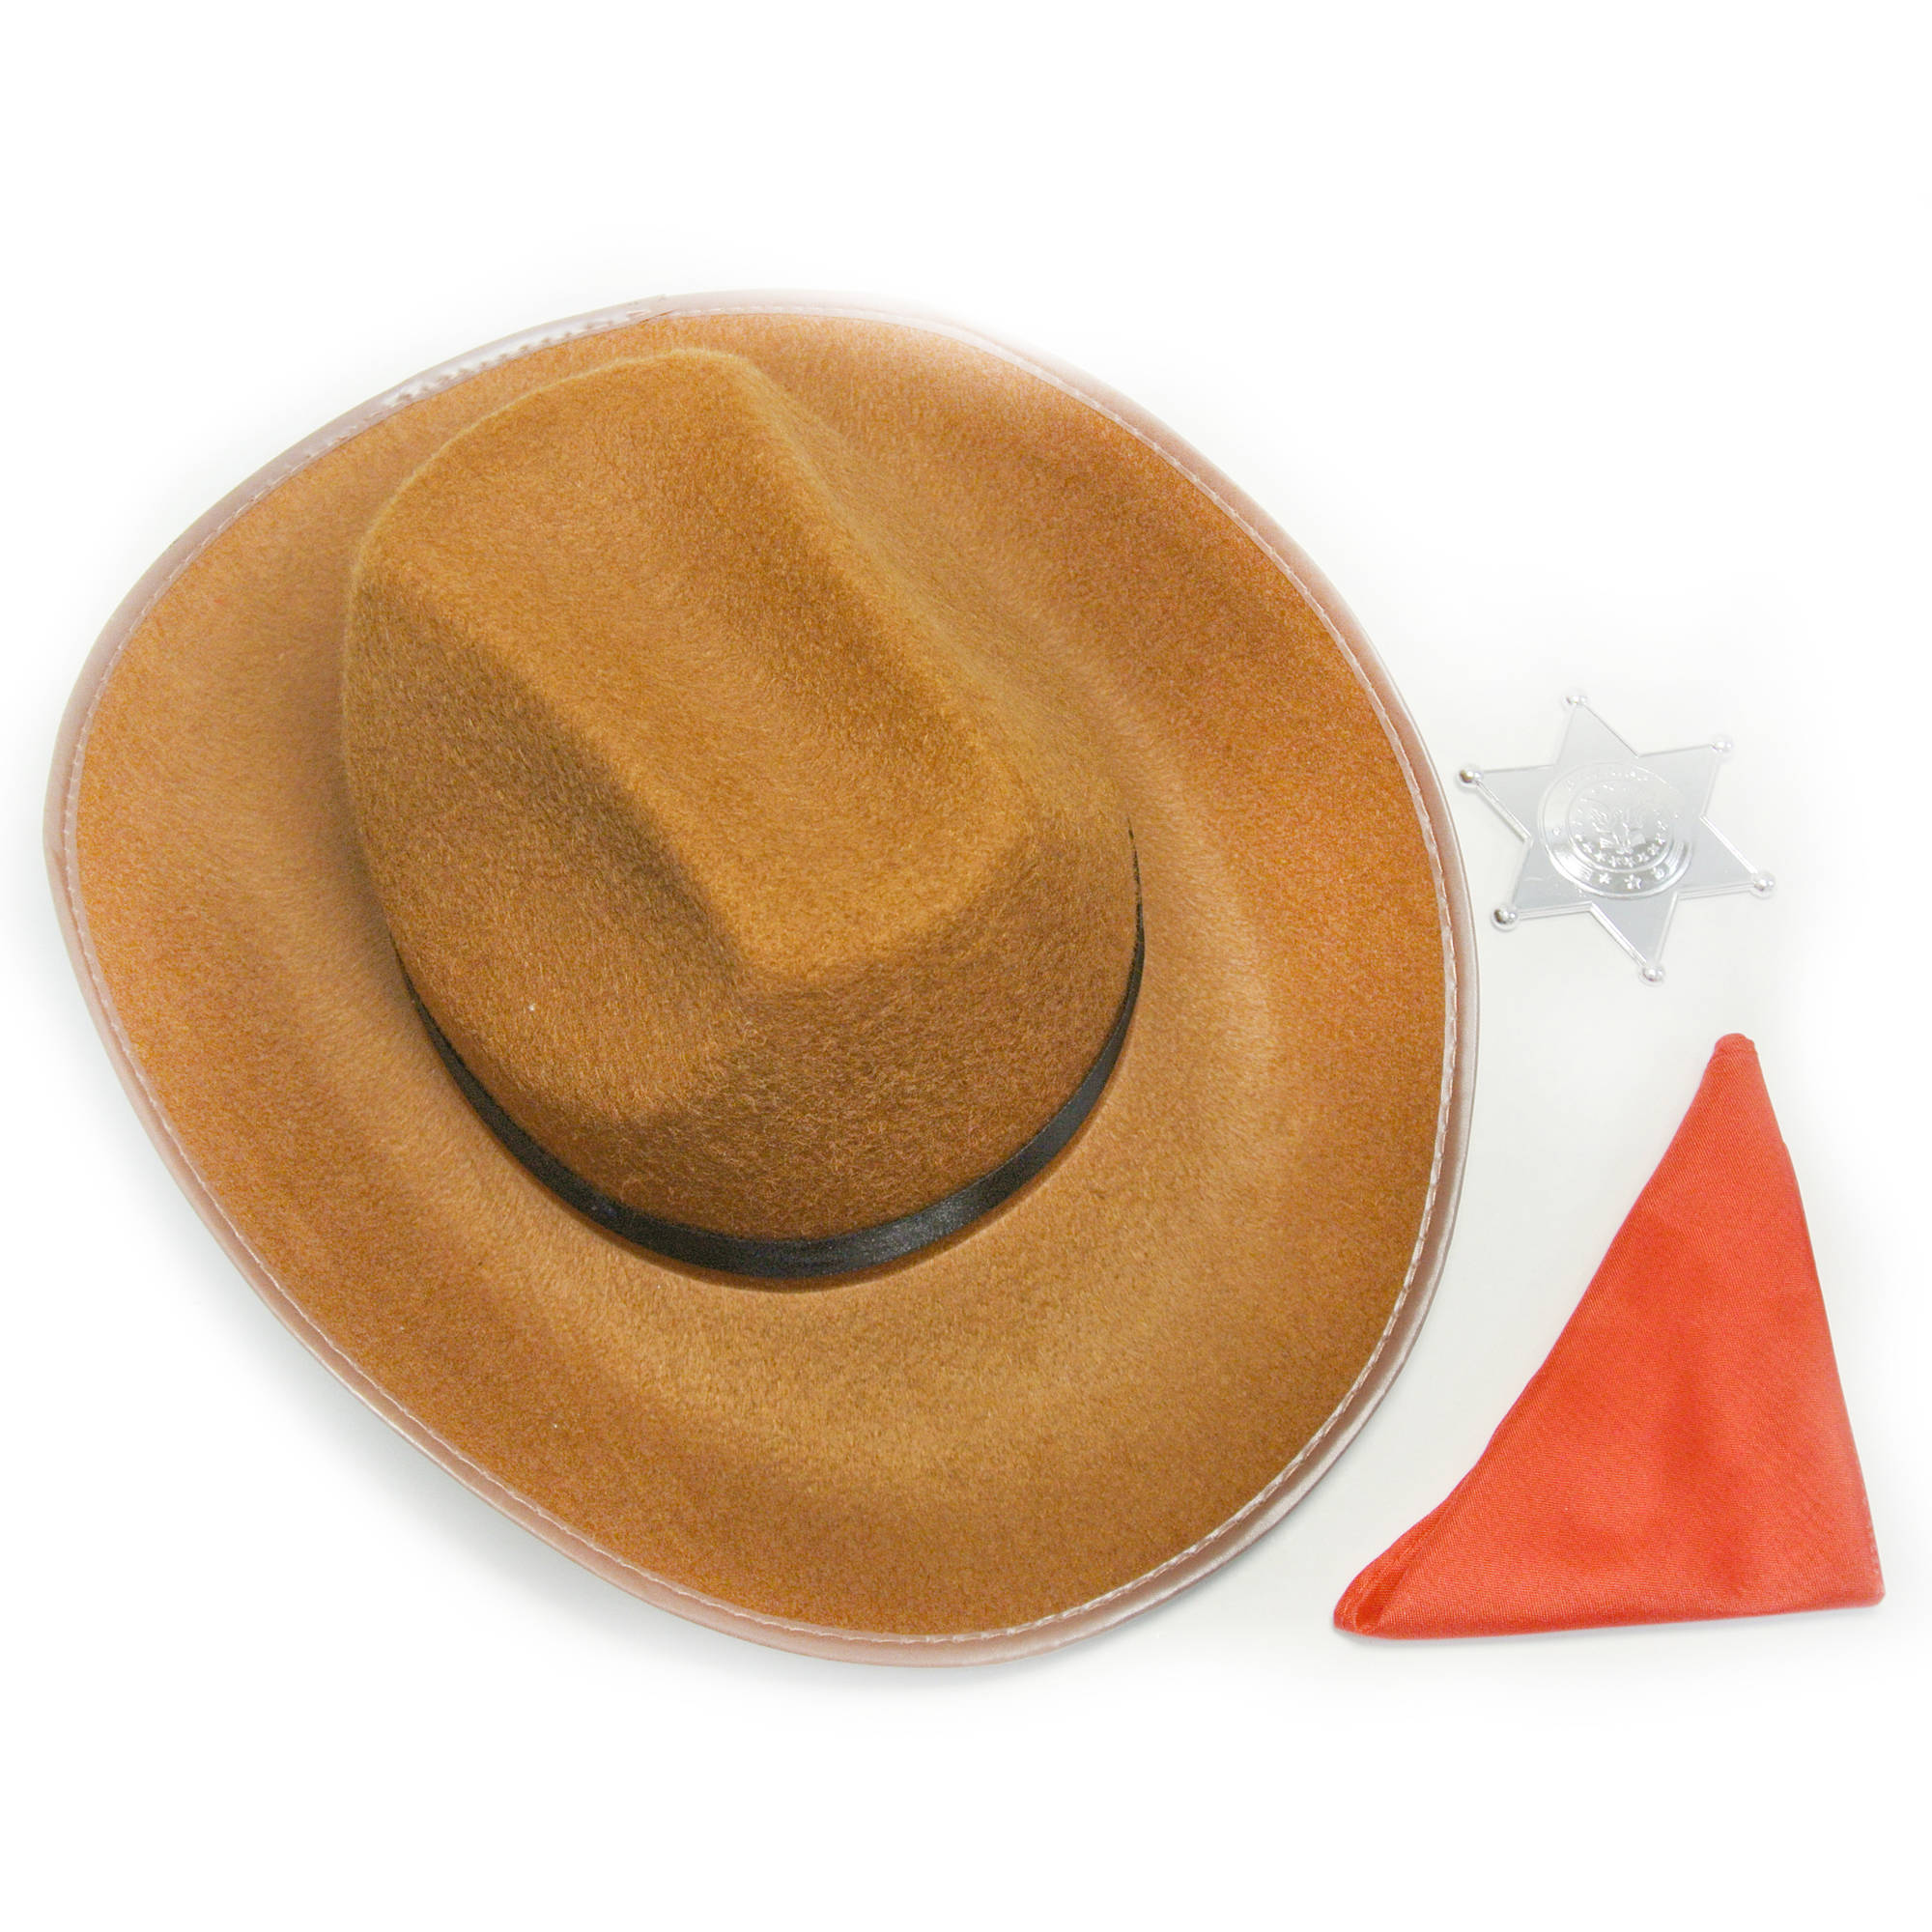 Cowboy Halloween Costume Accessory Kit